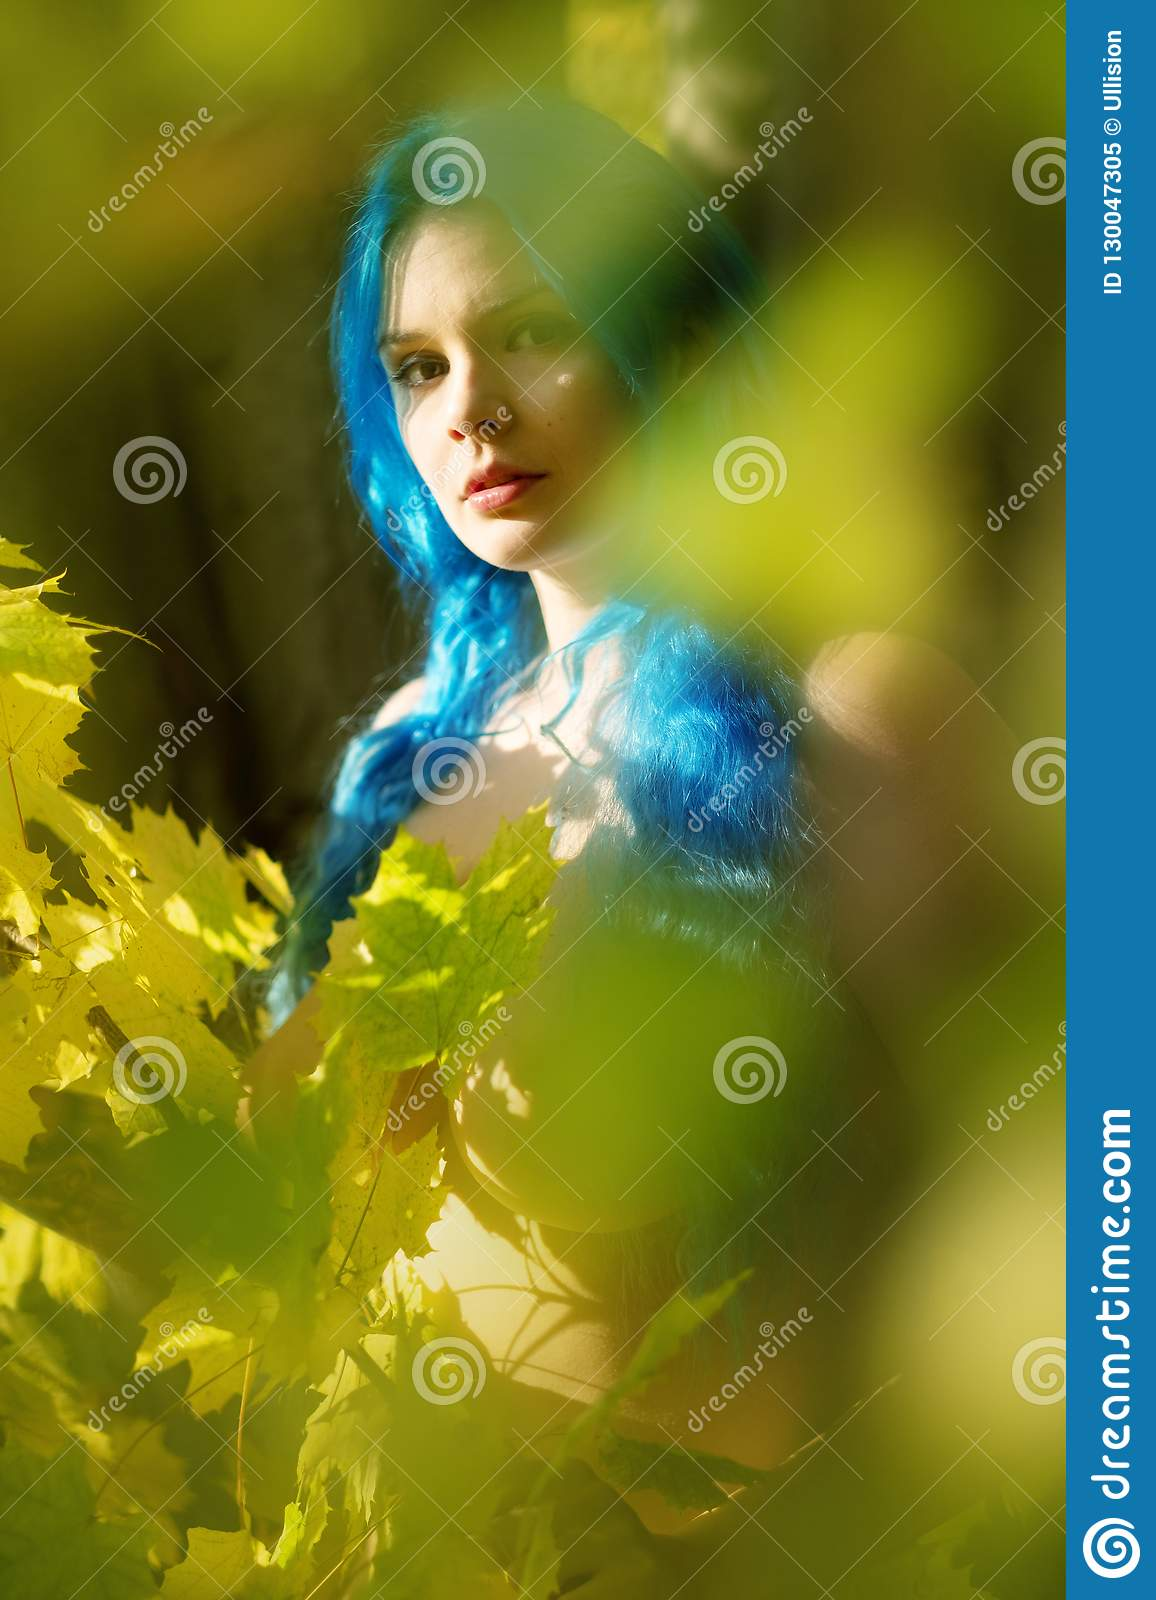 Beautiful young unconventional woman Emo with individual blue hairs, peers out in autumn forest between green yellow leaves.